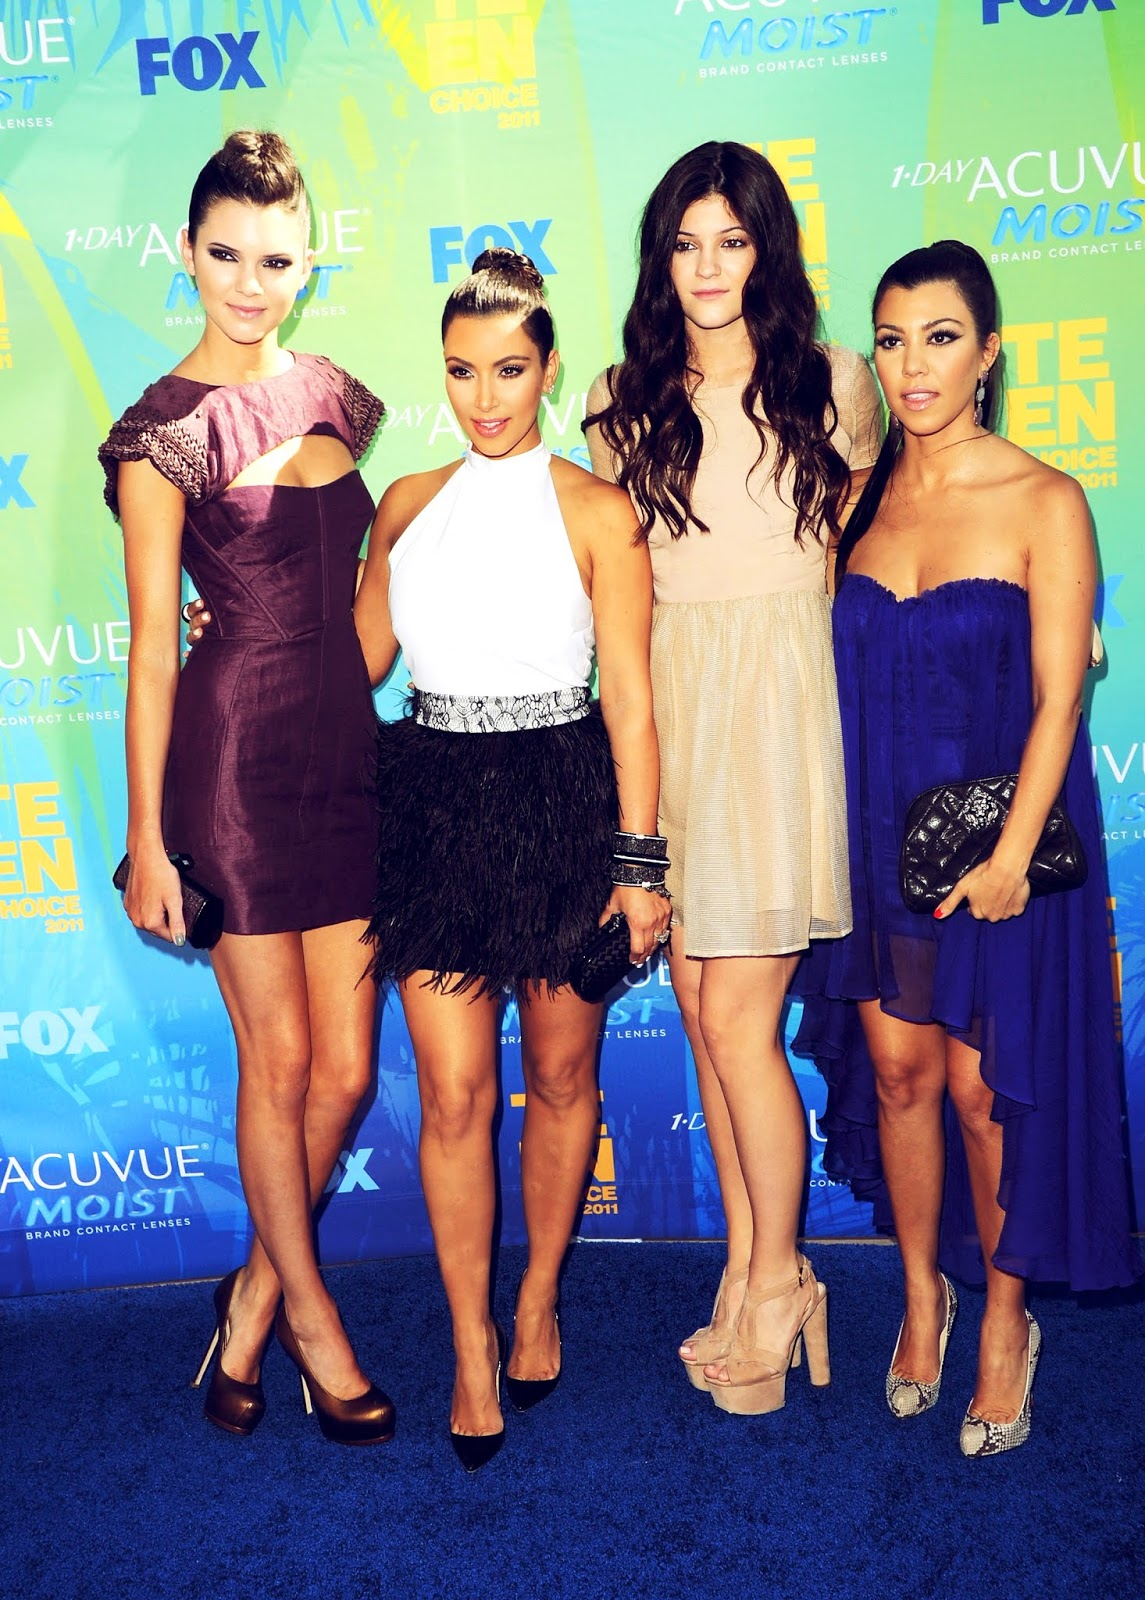 21 - Teen Choice Awards in August 11, 2011